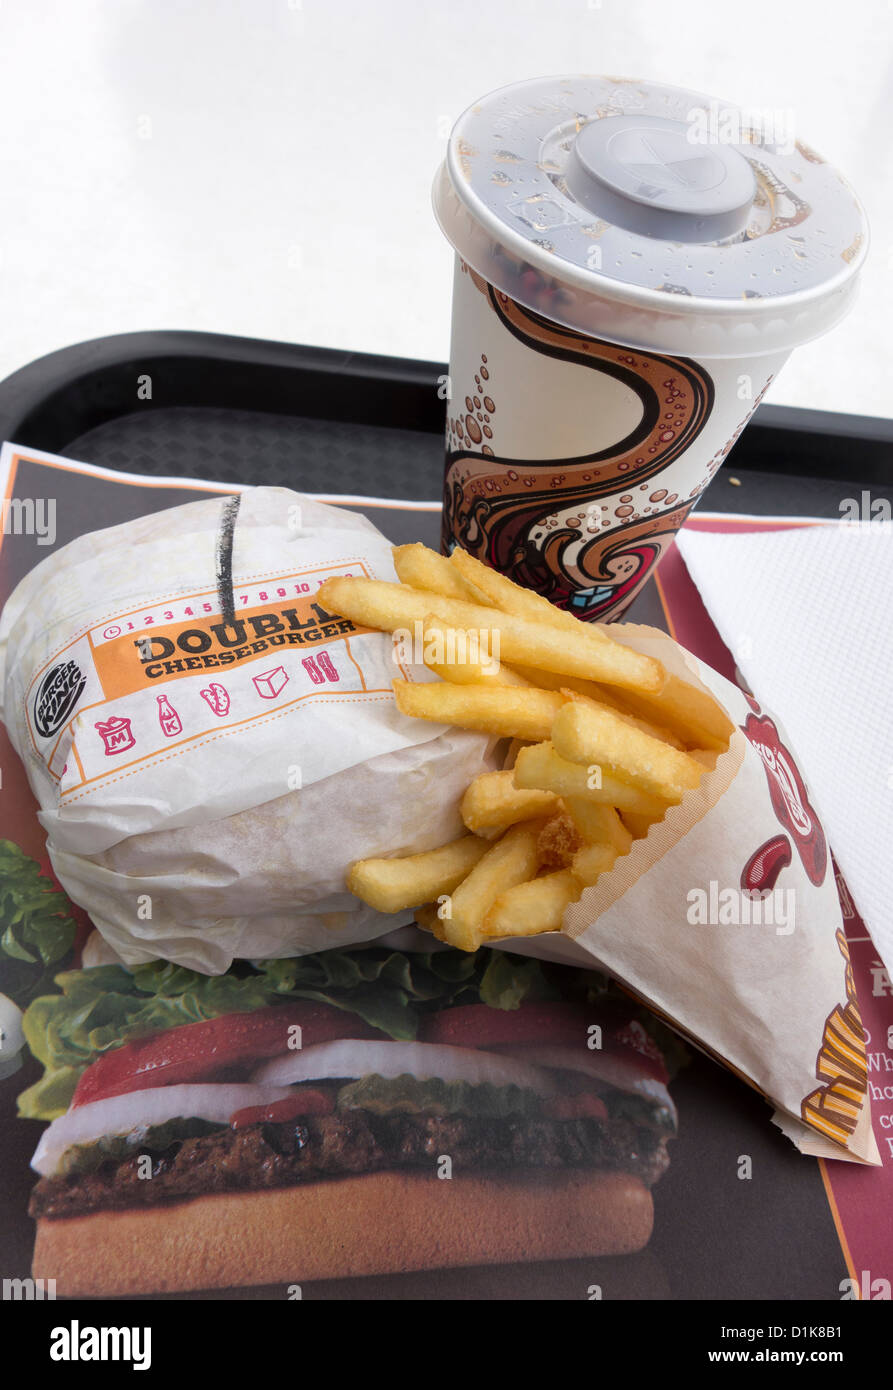 Burger King Menu With Double Cheeseburger Fries And Beverage Stock